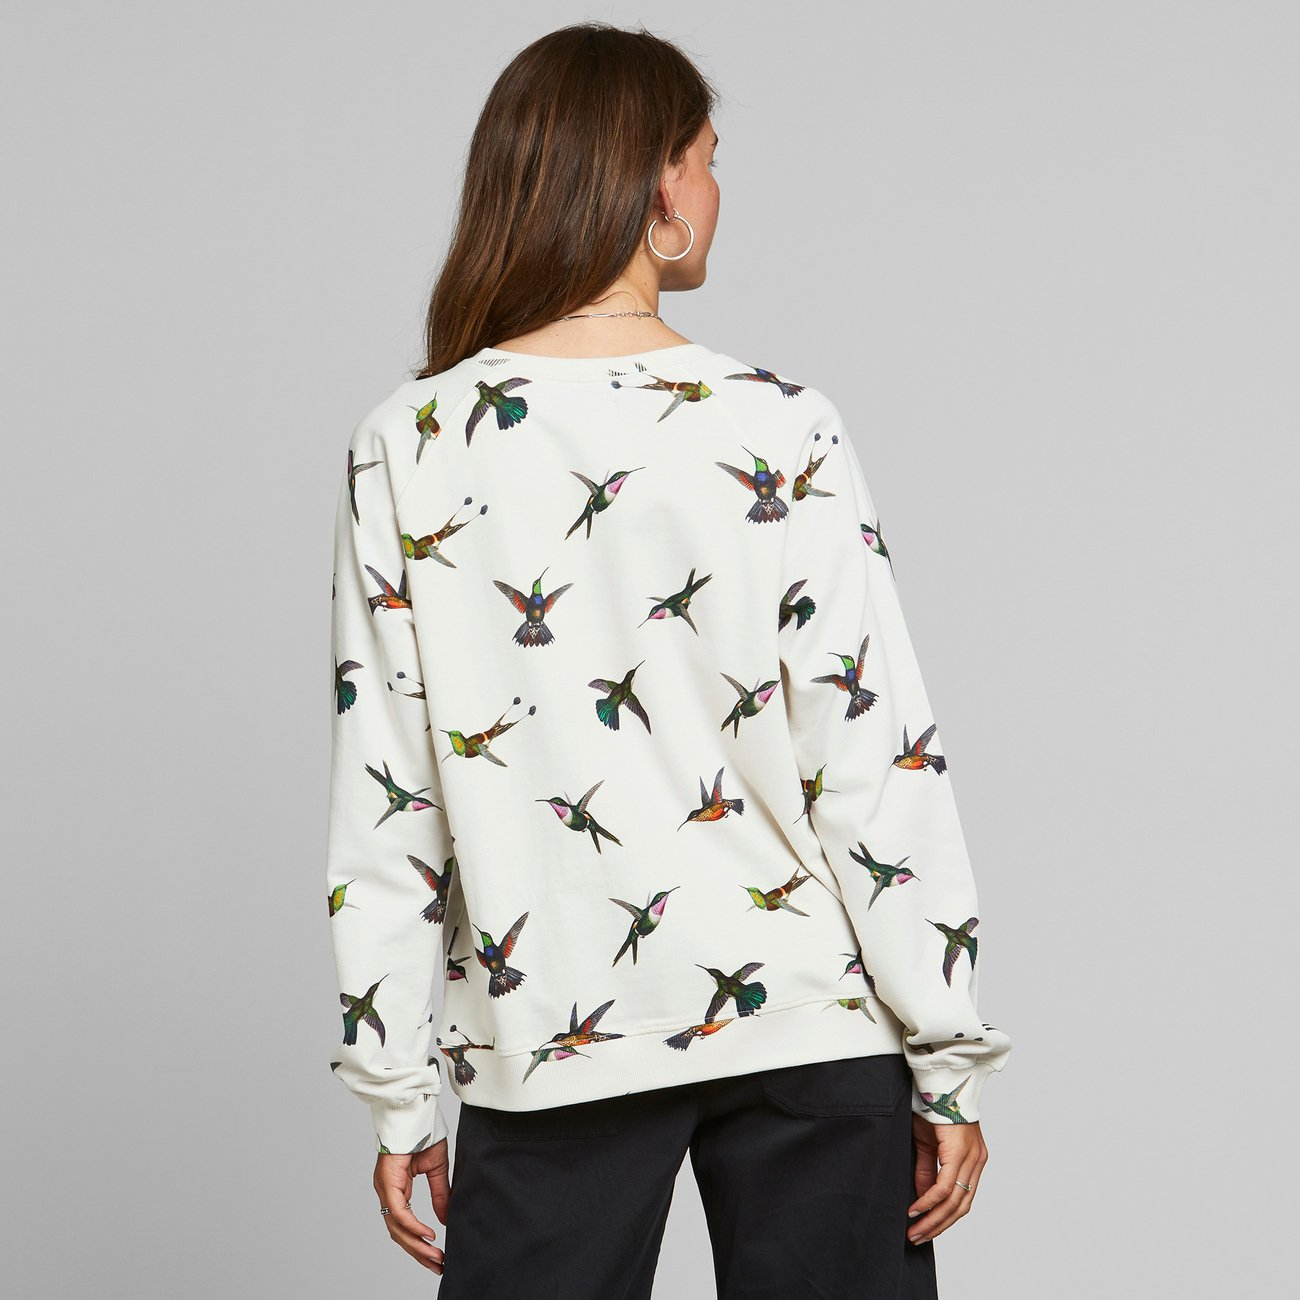 Sweatshirt Ystad Raglan Hummingbirds Off-White